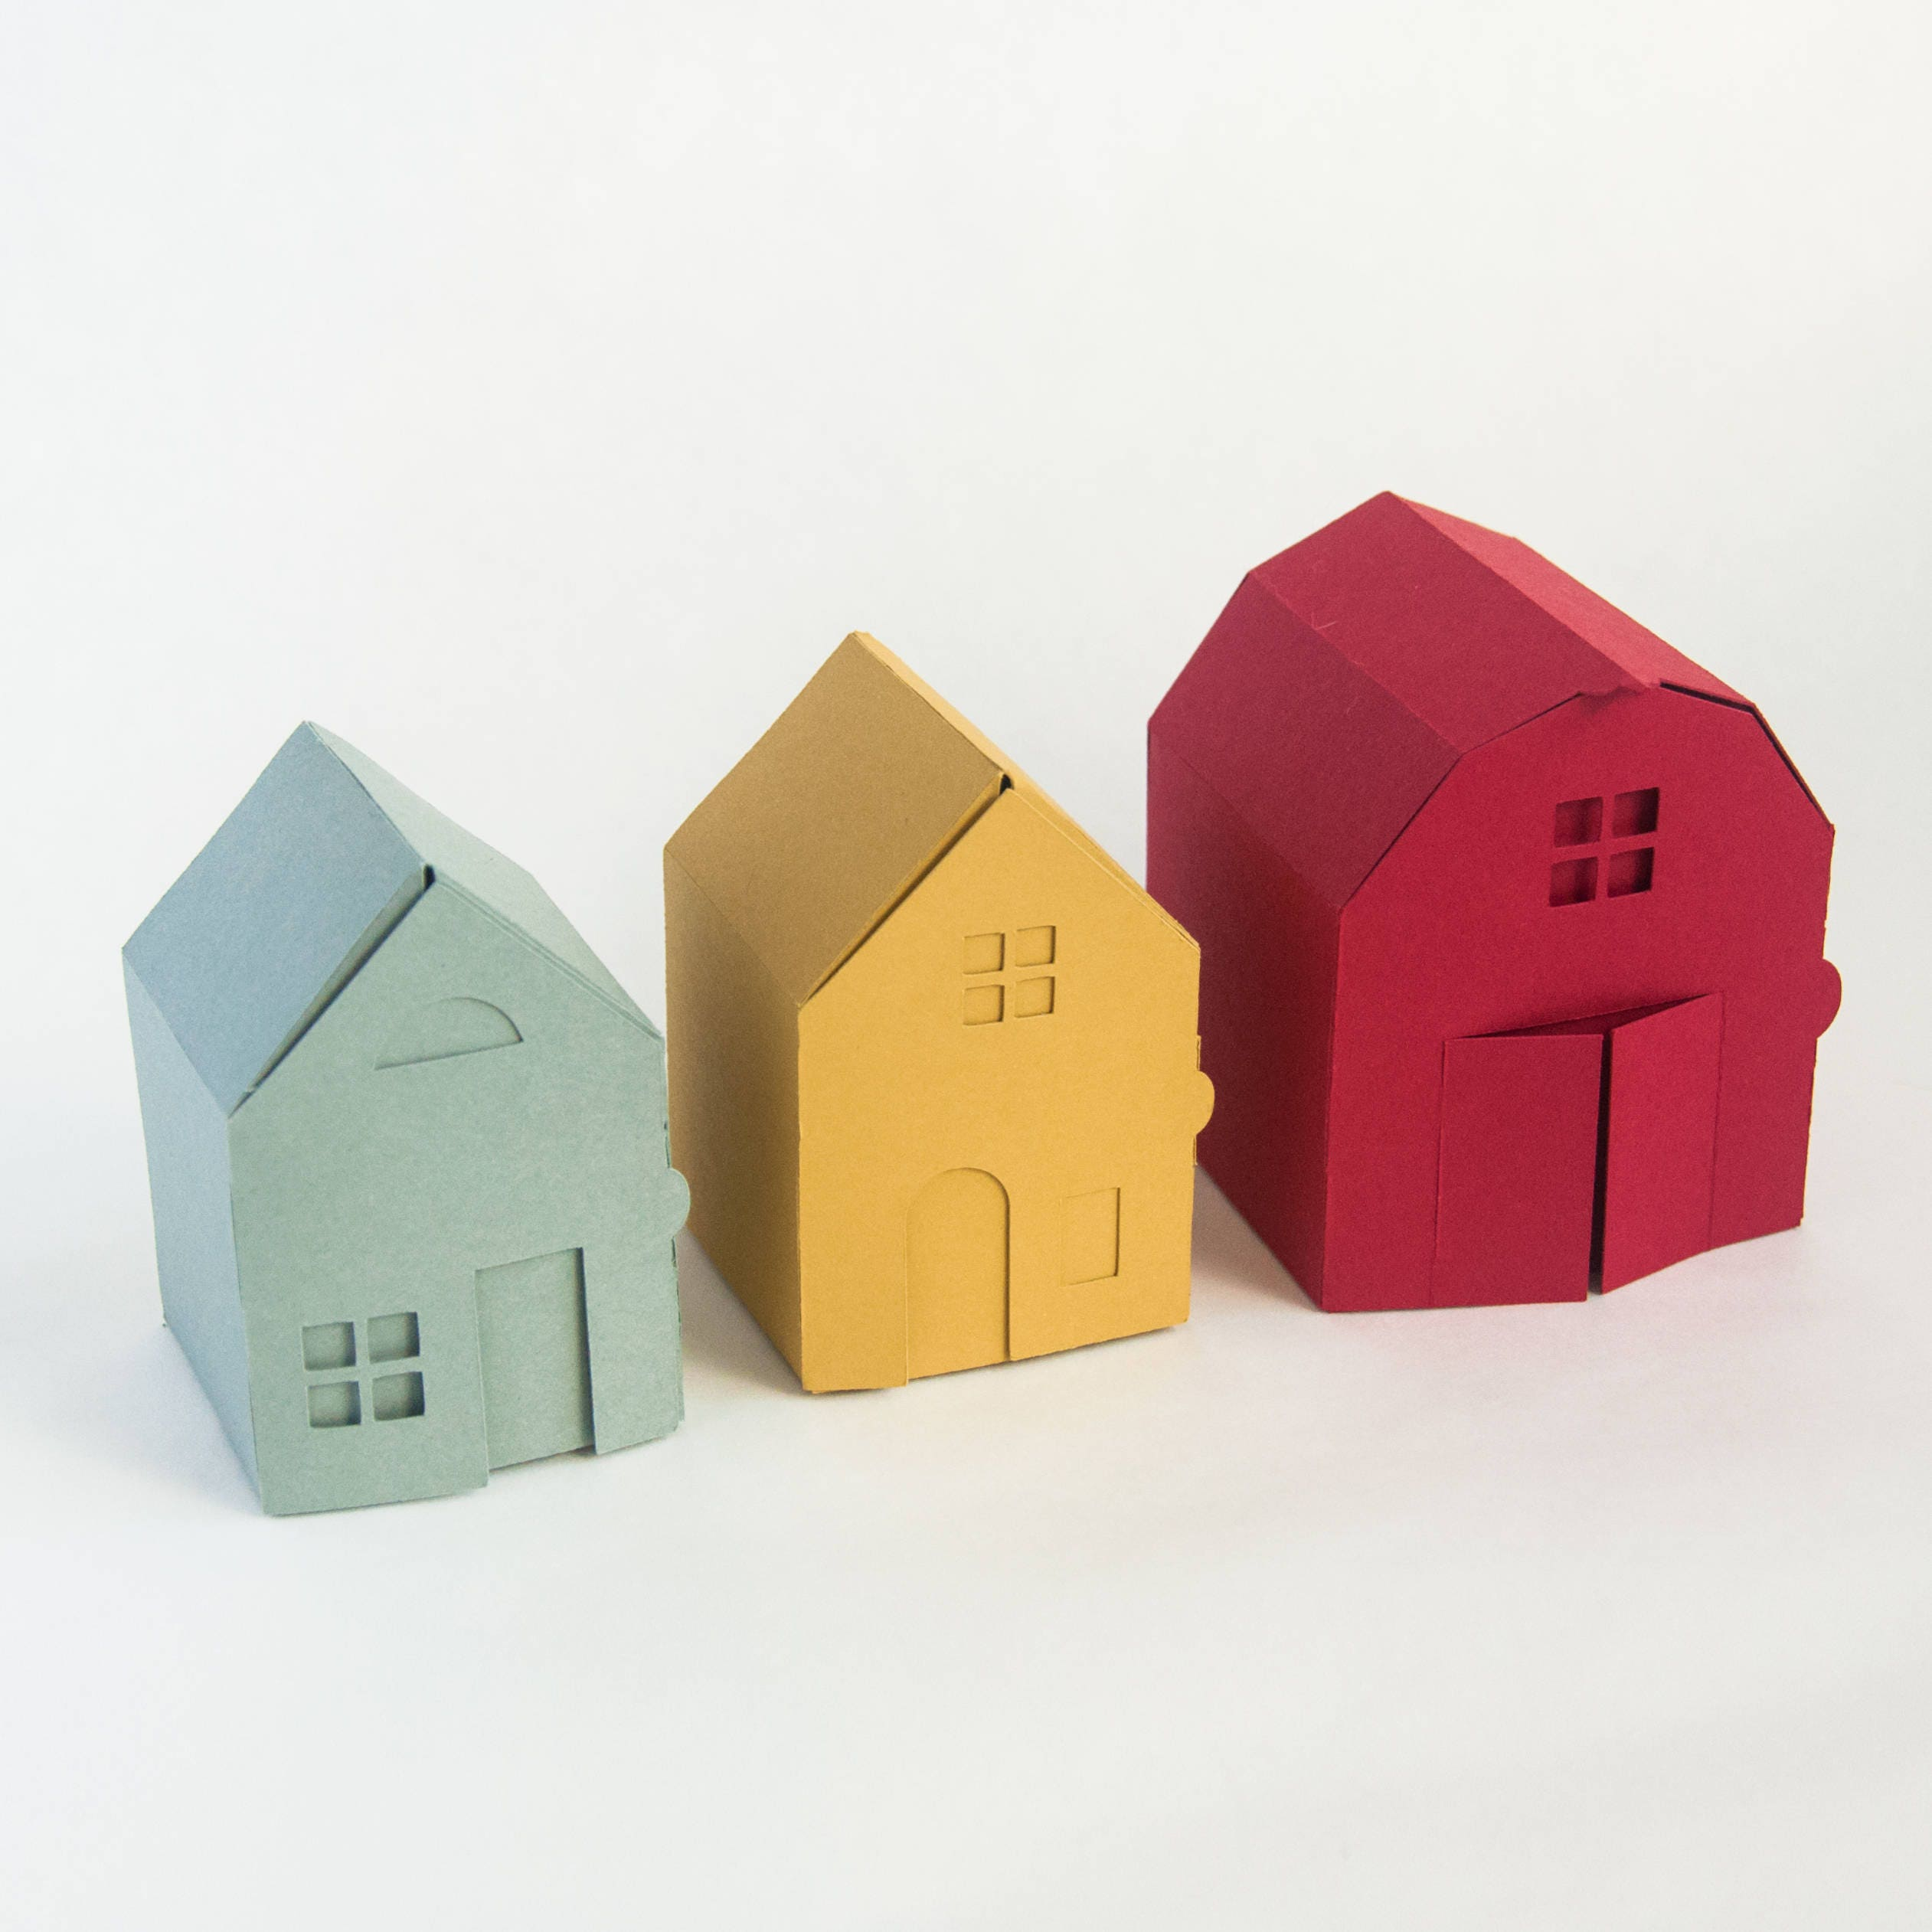 Village Papercraft Kit Make Your Own Tiny Paper Houses And